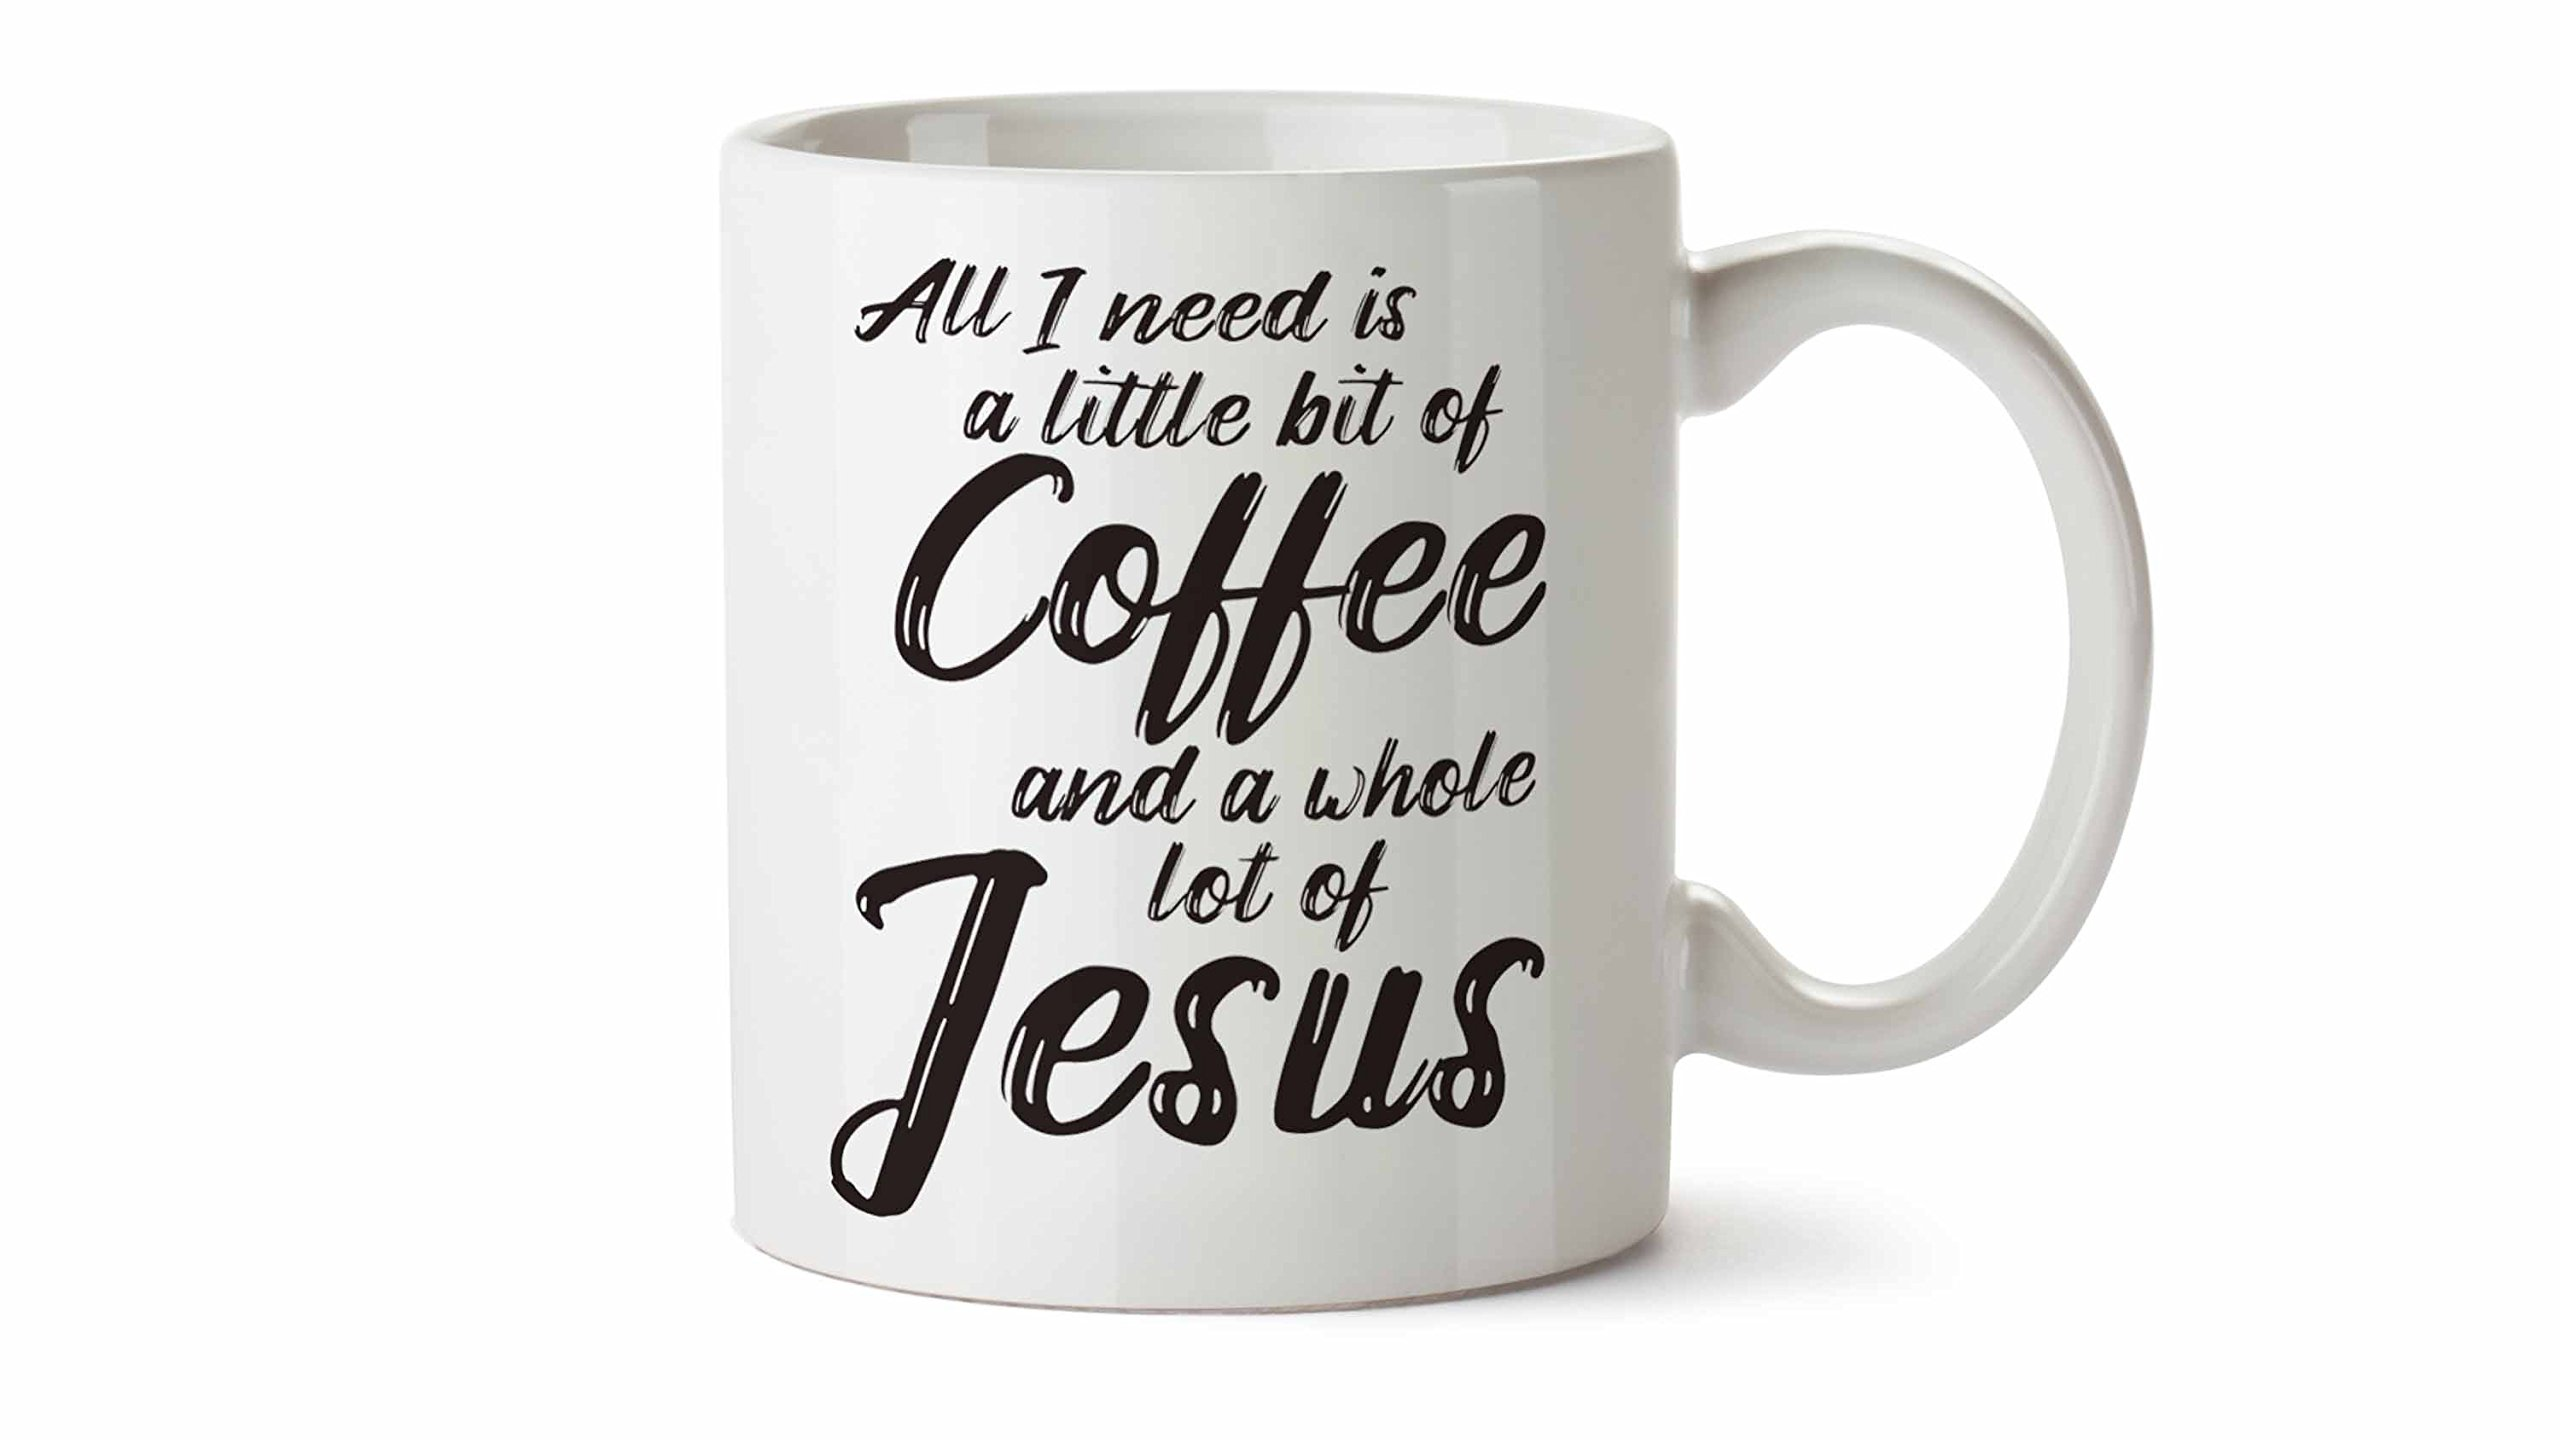 All I Need is a Little Bit of Coffee and a Whole Lot of Jesus 11 oz Novelty Coffee Mug